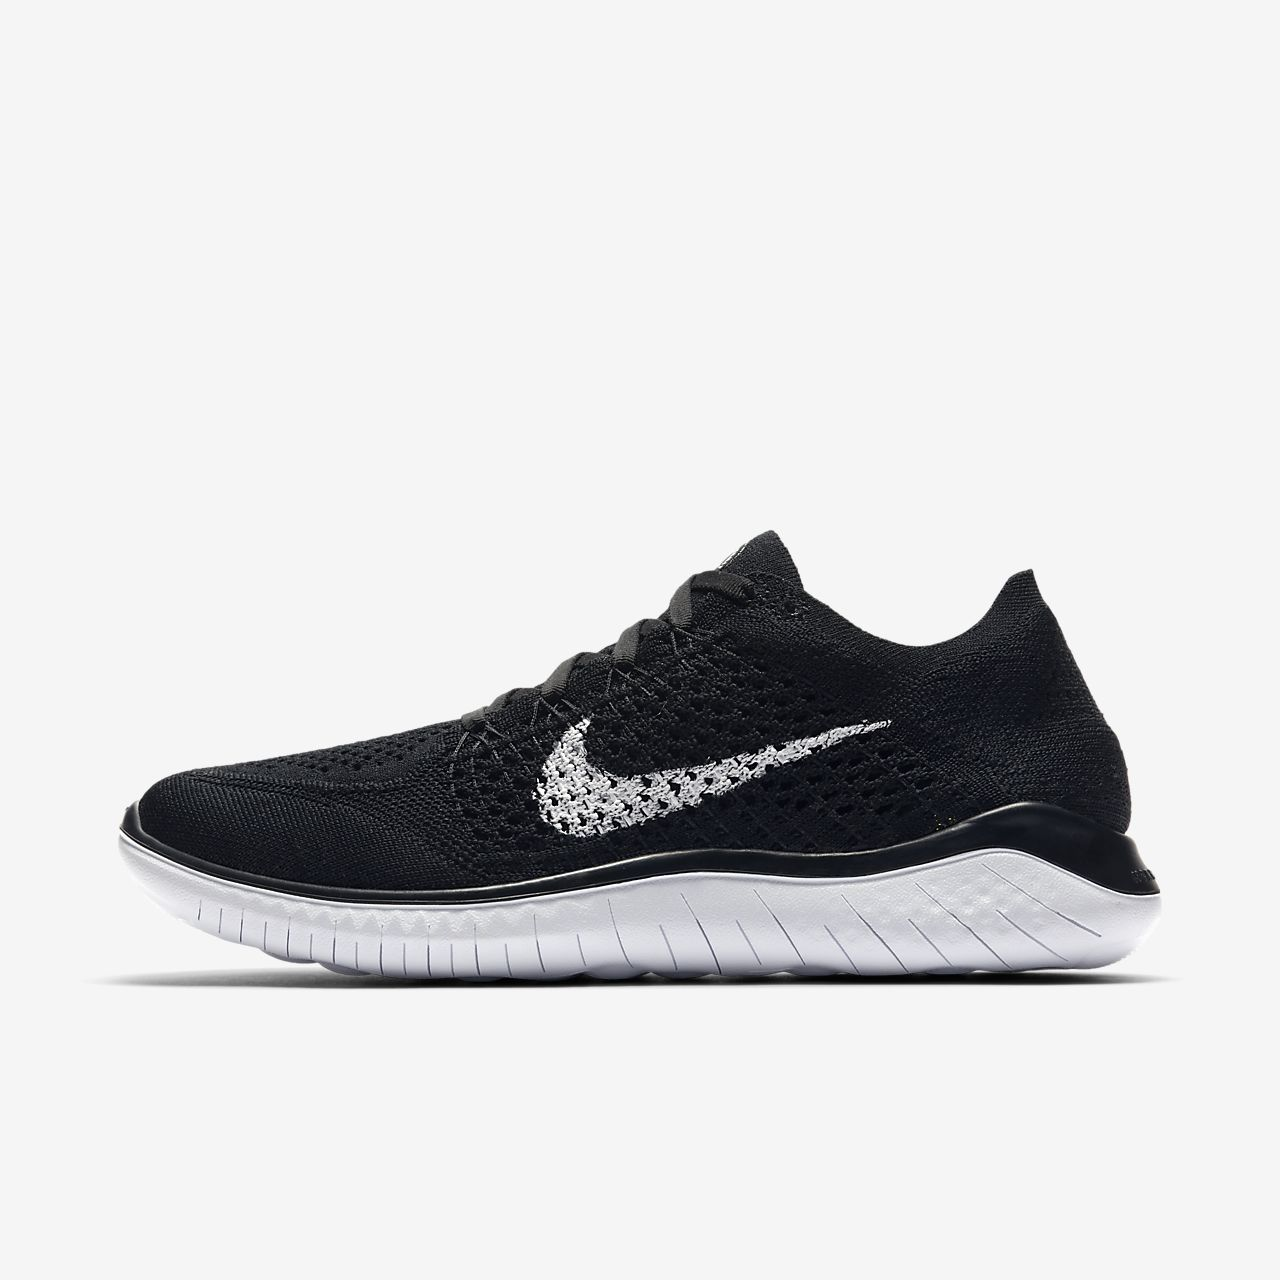 Chaussure de running Nike Free RN Flyknit 2018 pour Femme . Nike FR